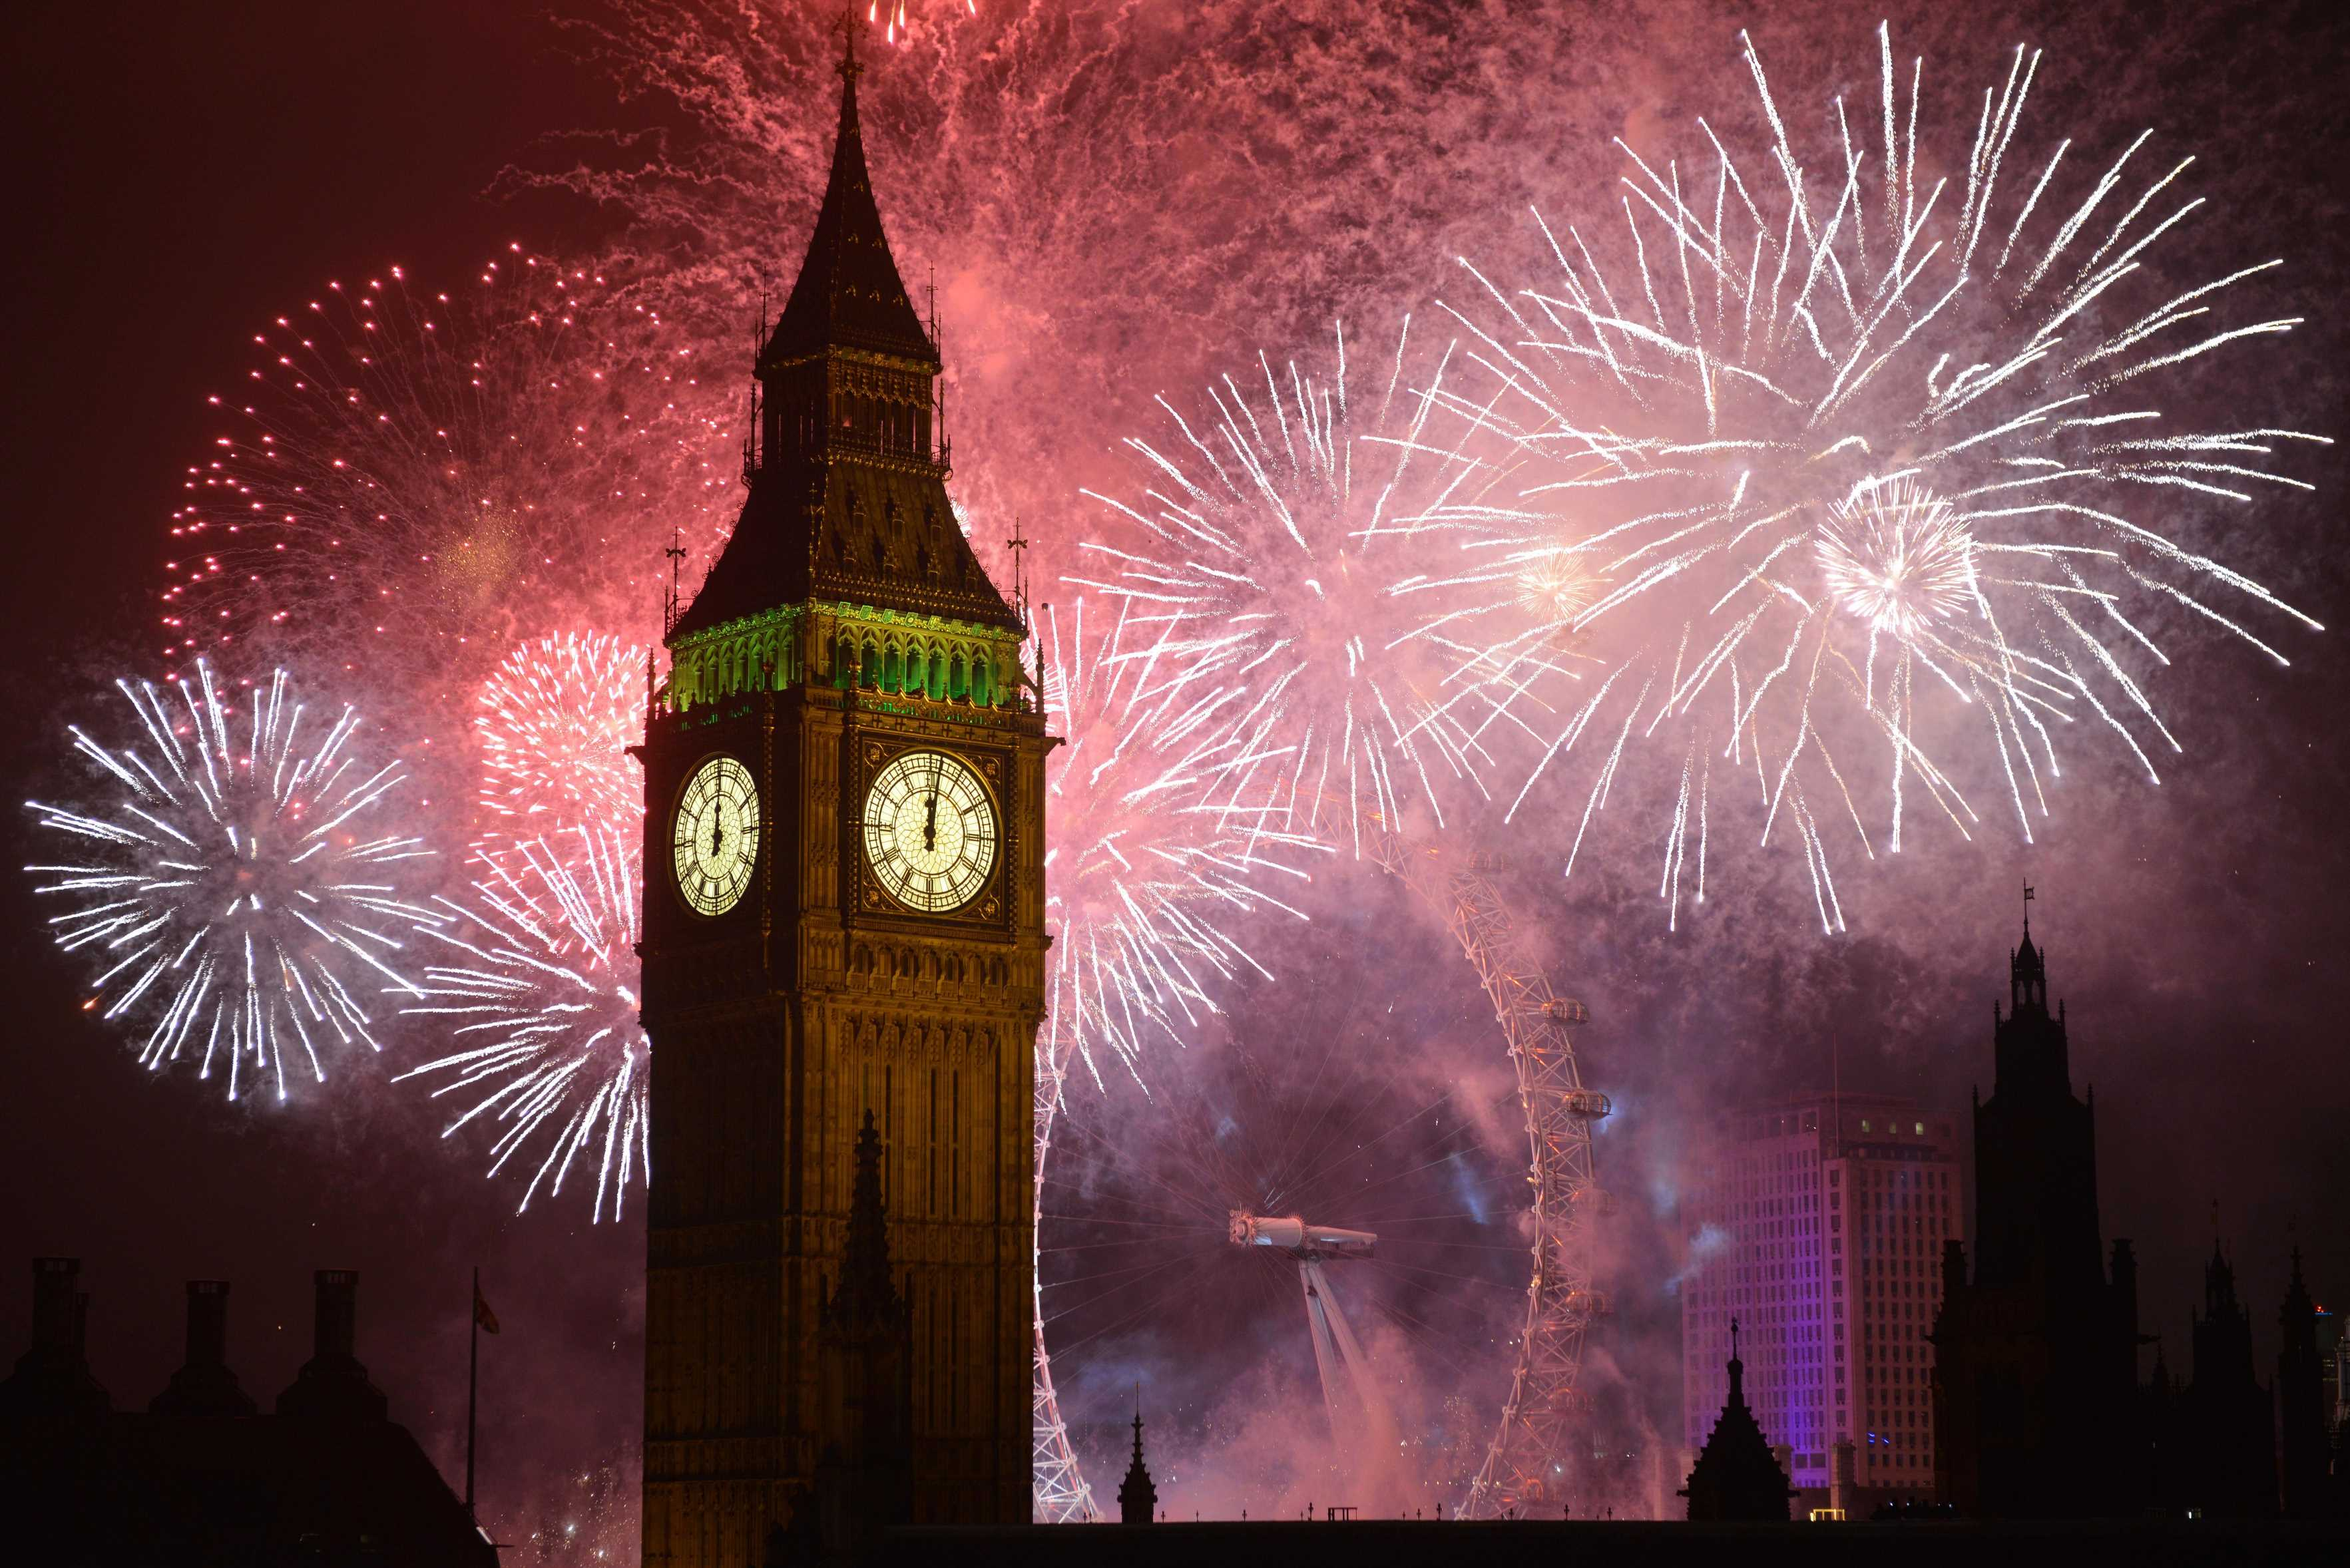 Where to watch New Year's Eve fireworks in London and where are the best views?